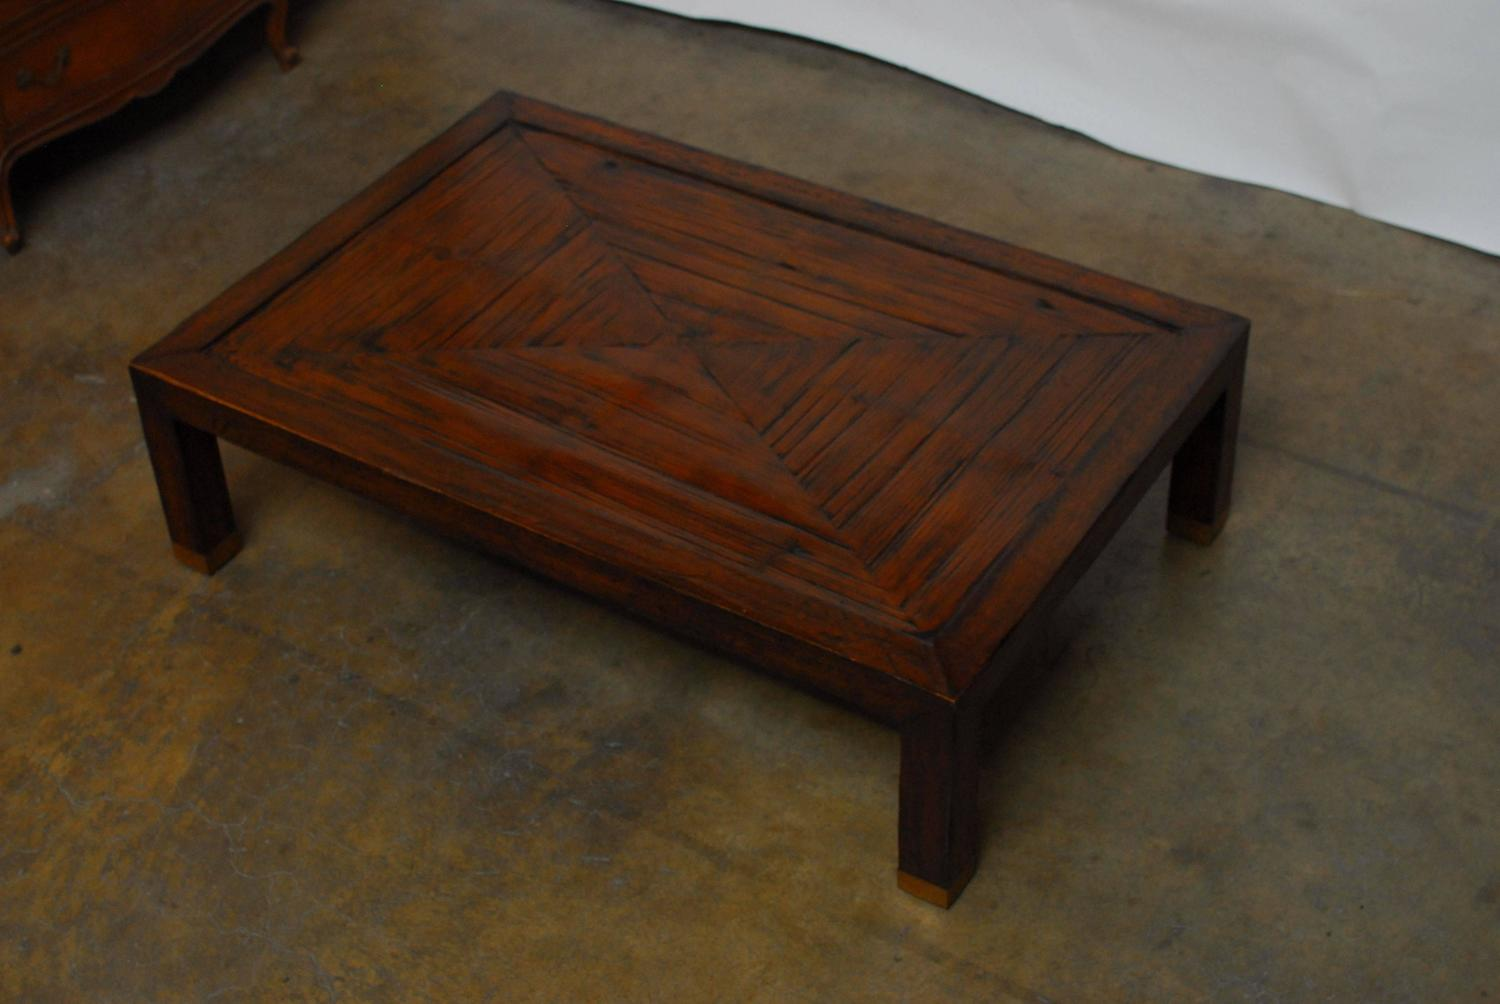 Asian Inspired Cocktail Table By Henredon At 1stdibs